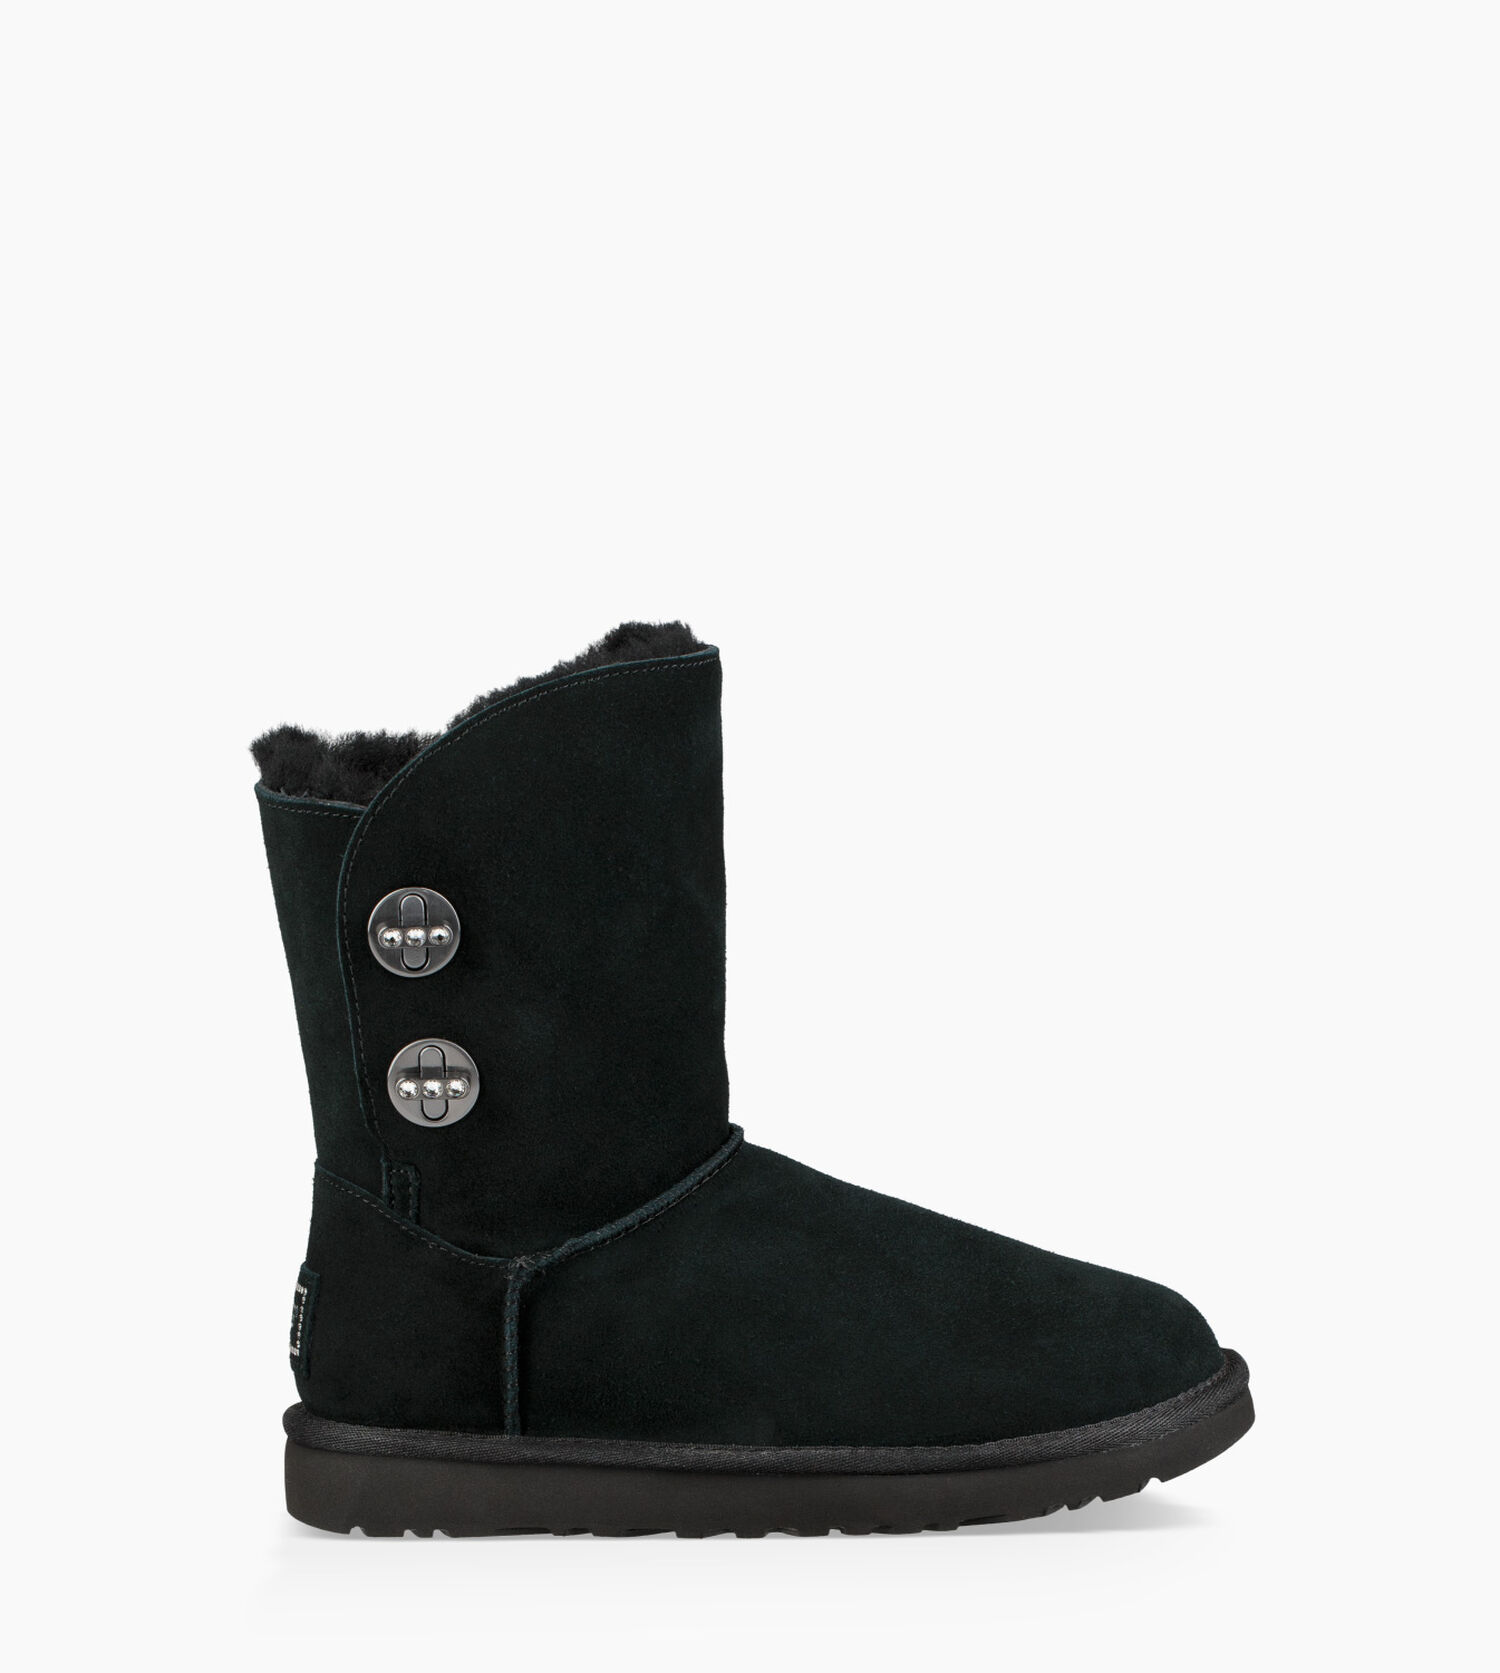 7dce3e77a0a Women's Share this product Short Turnlock Bling Boot